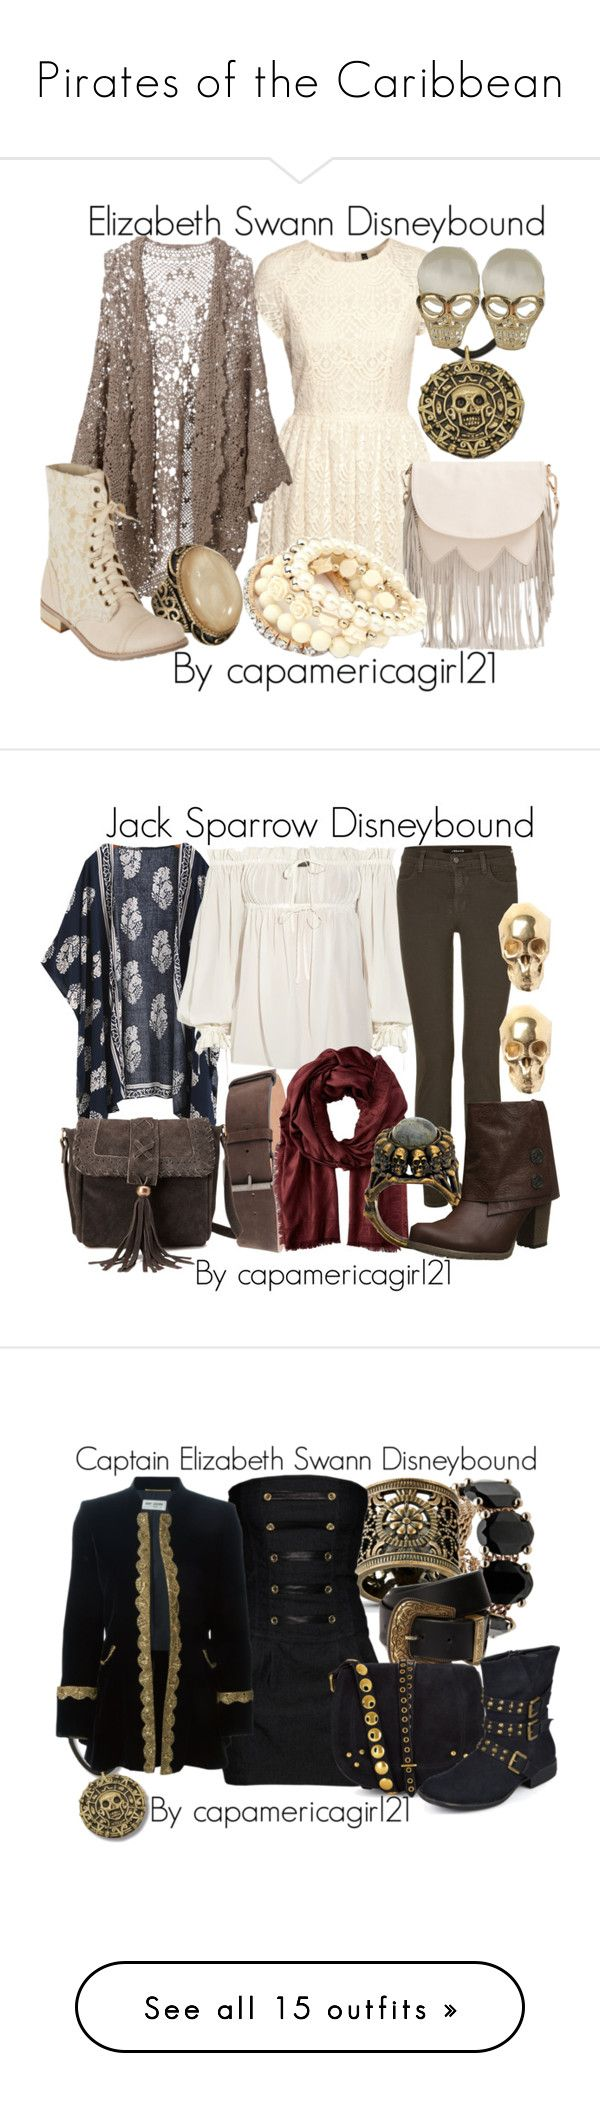 """""""Pirates of the Caribbean"""" by capamericagirl21 ❤ liked on Polyvore featuring H&M, Mes Demoiselles..., Accessorize, dELiA*s, Topshop, Sole Society, Alexander McQueen, J Brand, Aspesi and Valentino"""